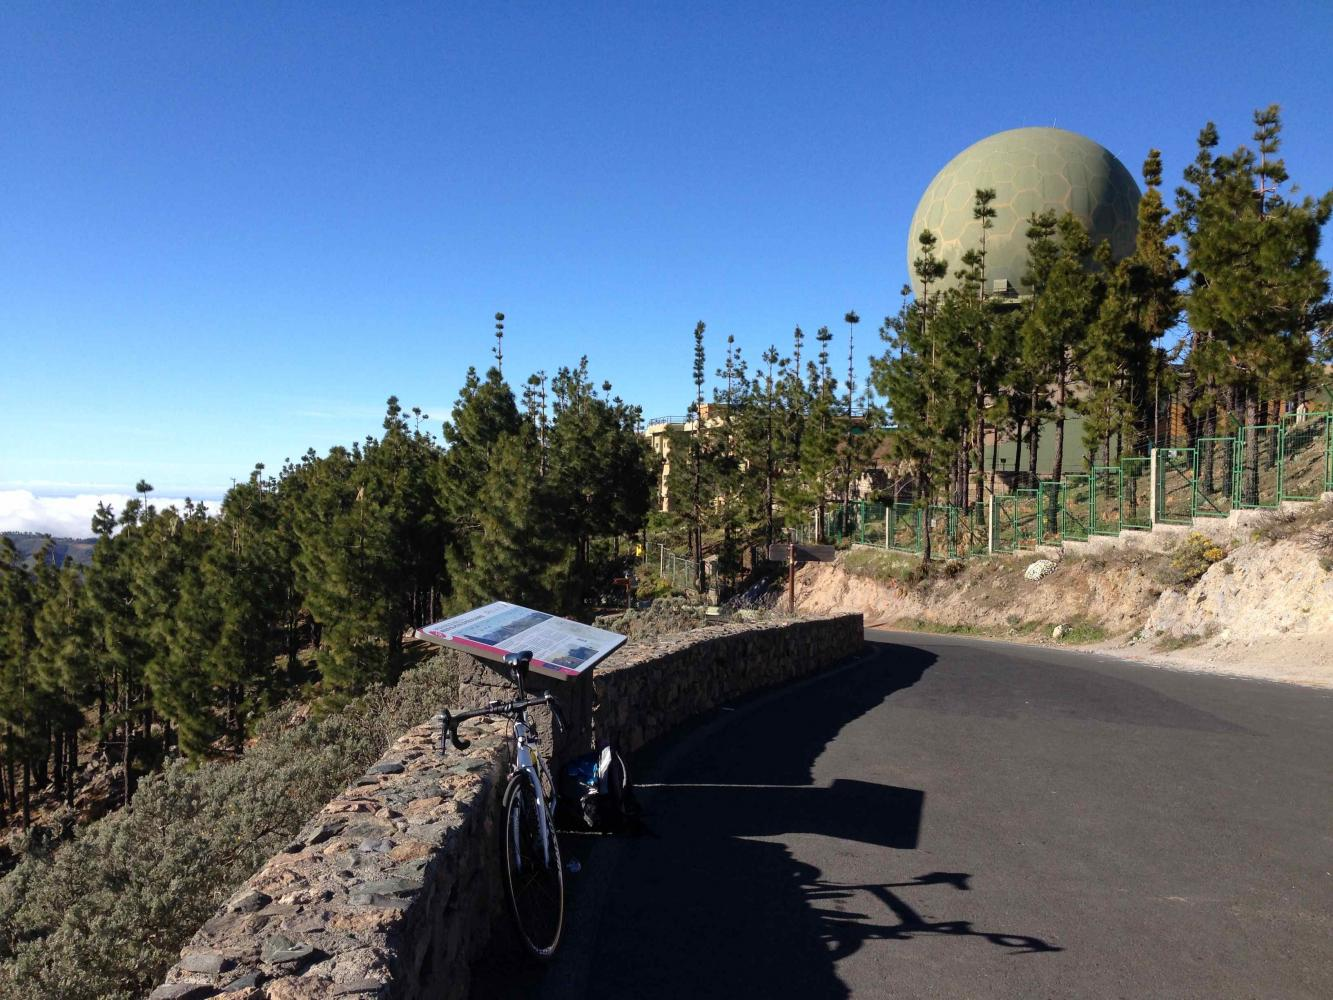 Pico de Las Nieves, Telde Bike Climb - PJAMM Cycling